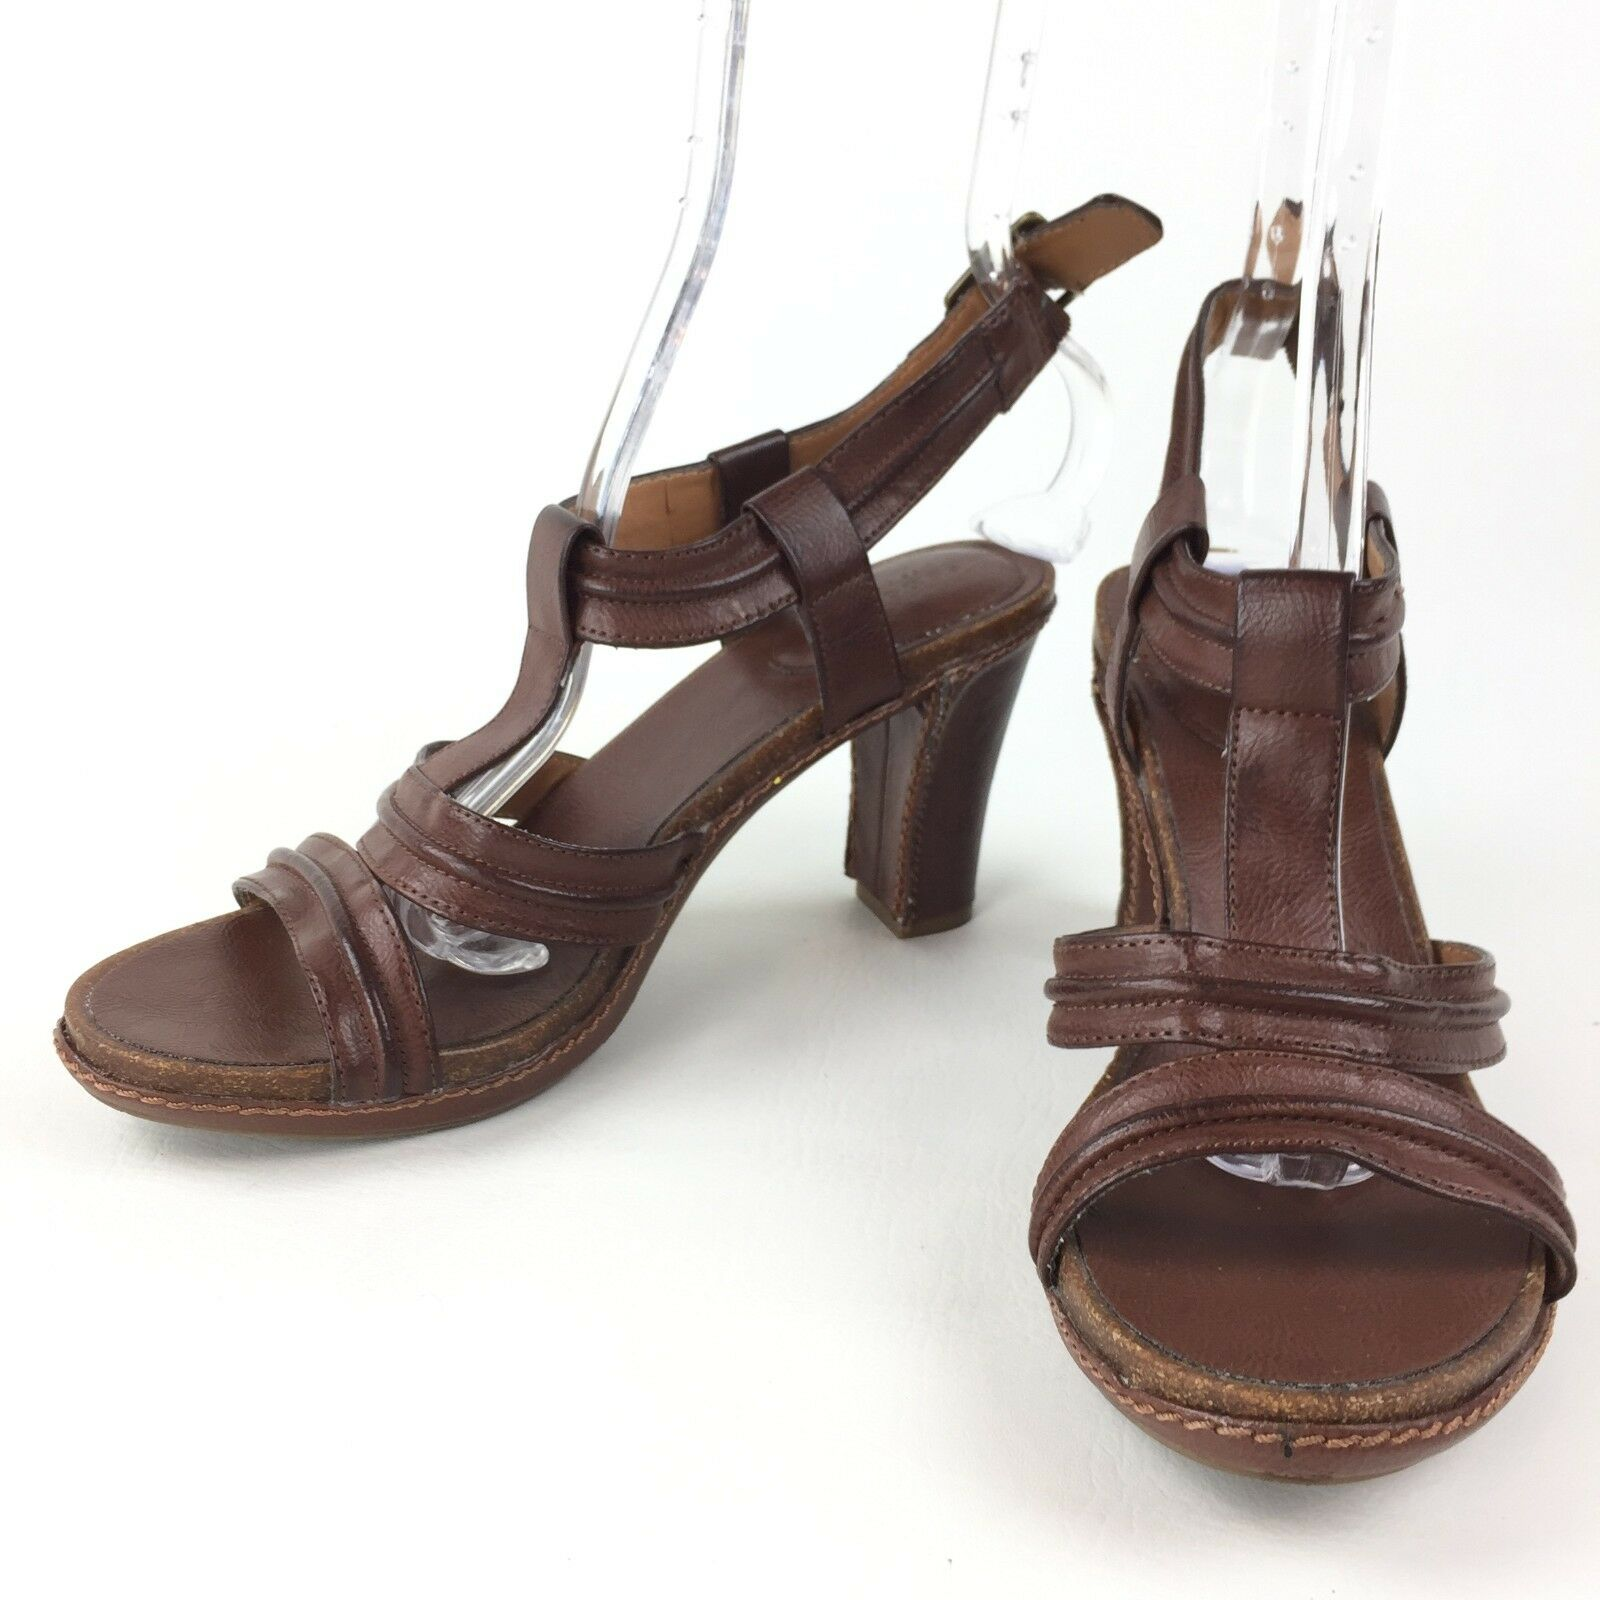 SONOMA Brown Life + Style Womens Brown SONOMA Sandals Heels Ankle Strap Buckle 9M 1f70e4